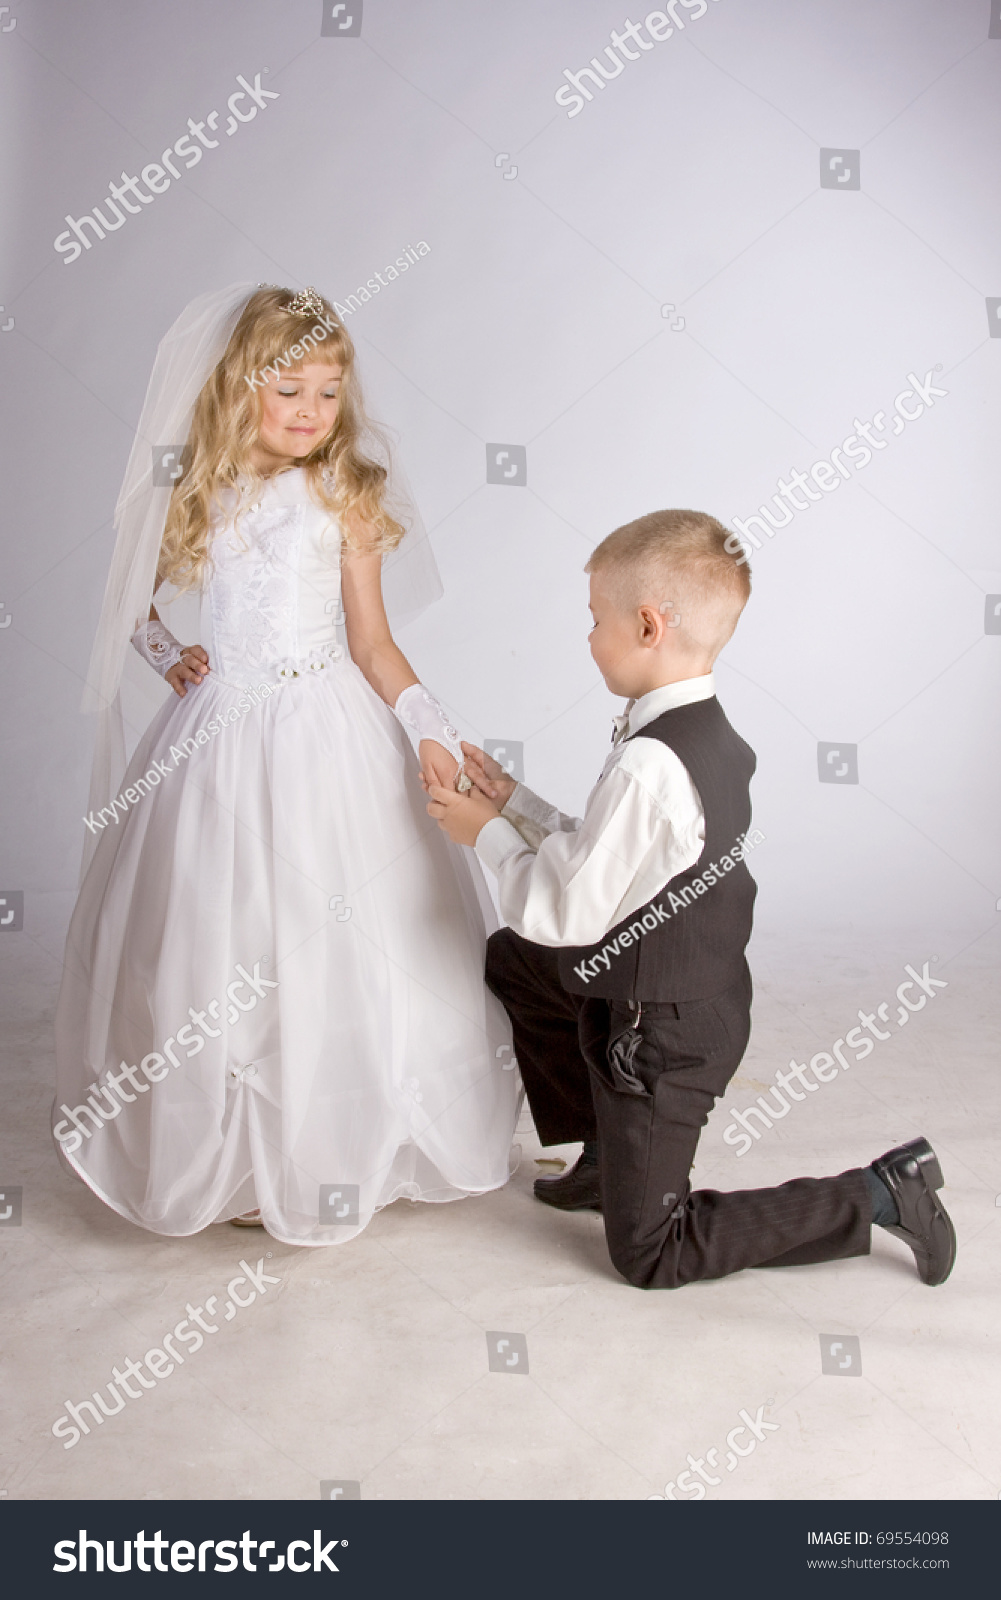 this little bride groom are Just look at this little beauty she was a very shy little bride, but very cute the dress she is wearing was made for me when i was her age look how lovely she looks.